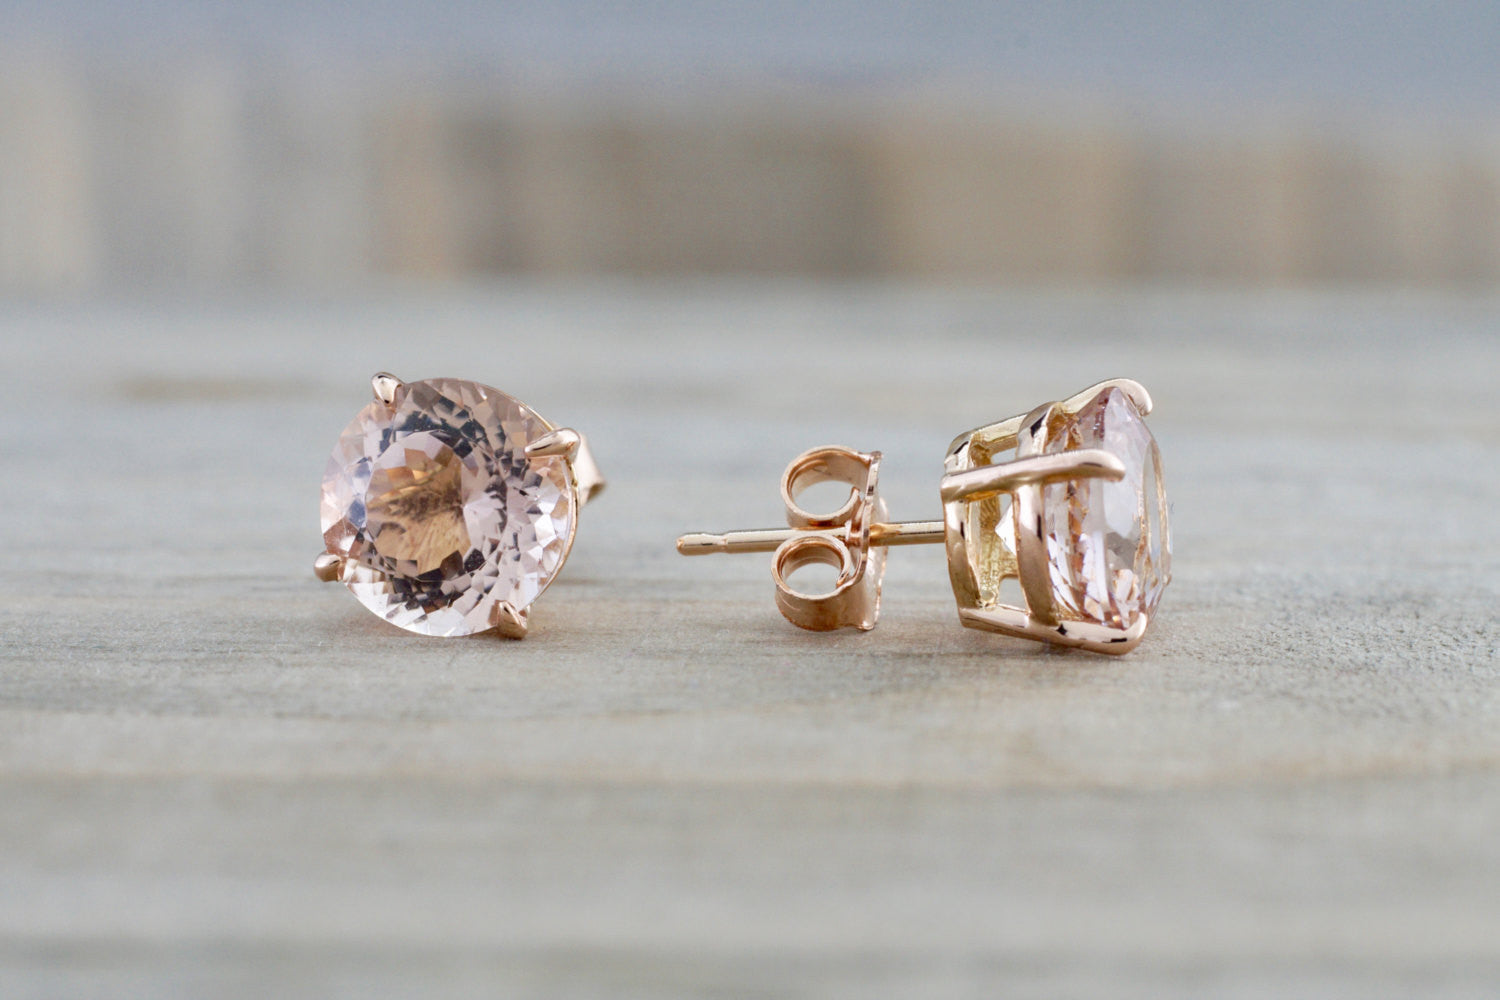 8mm Morganite on 14k Solid Rose Gold Earring Studs Post Push Back Square Post Stud